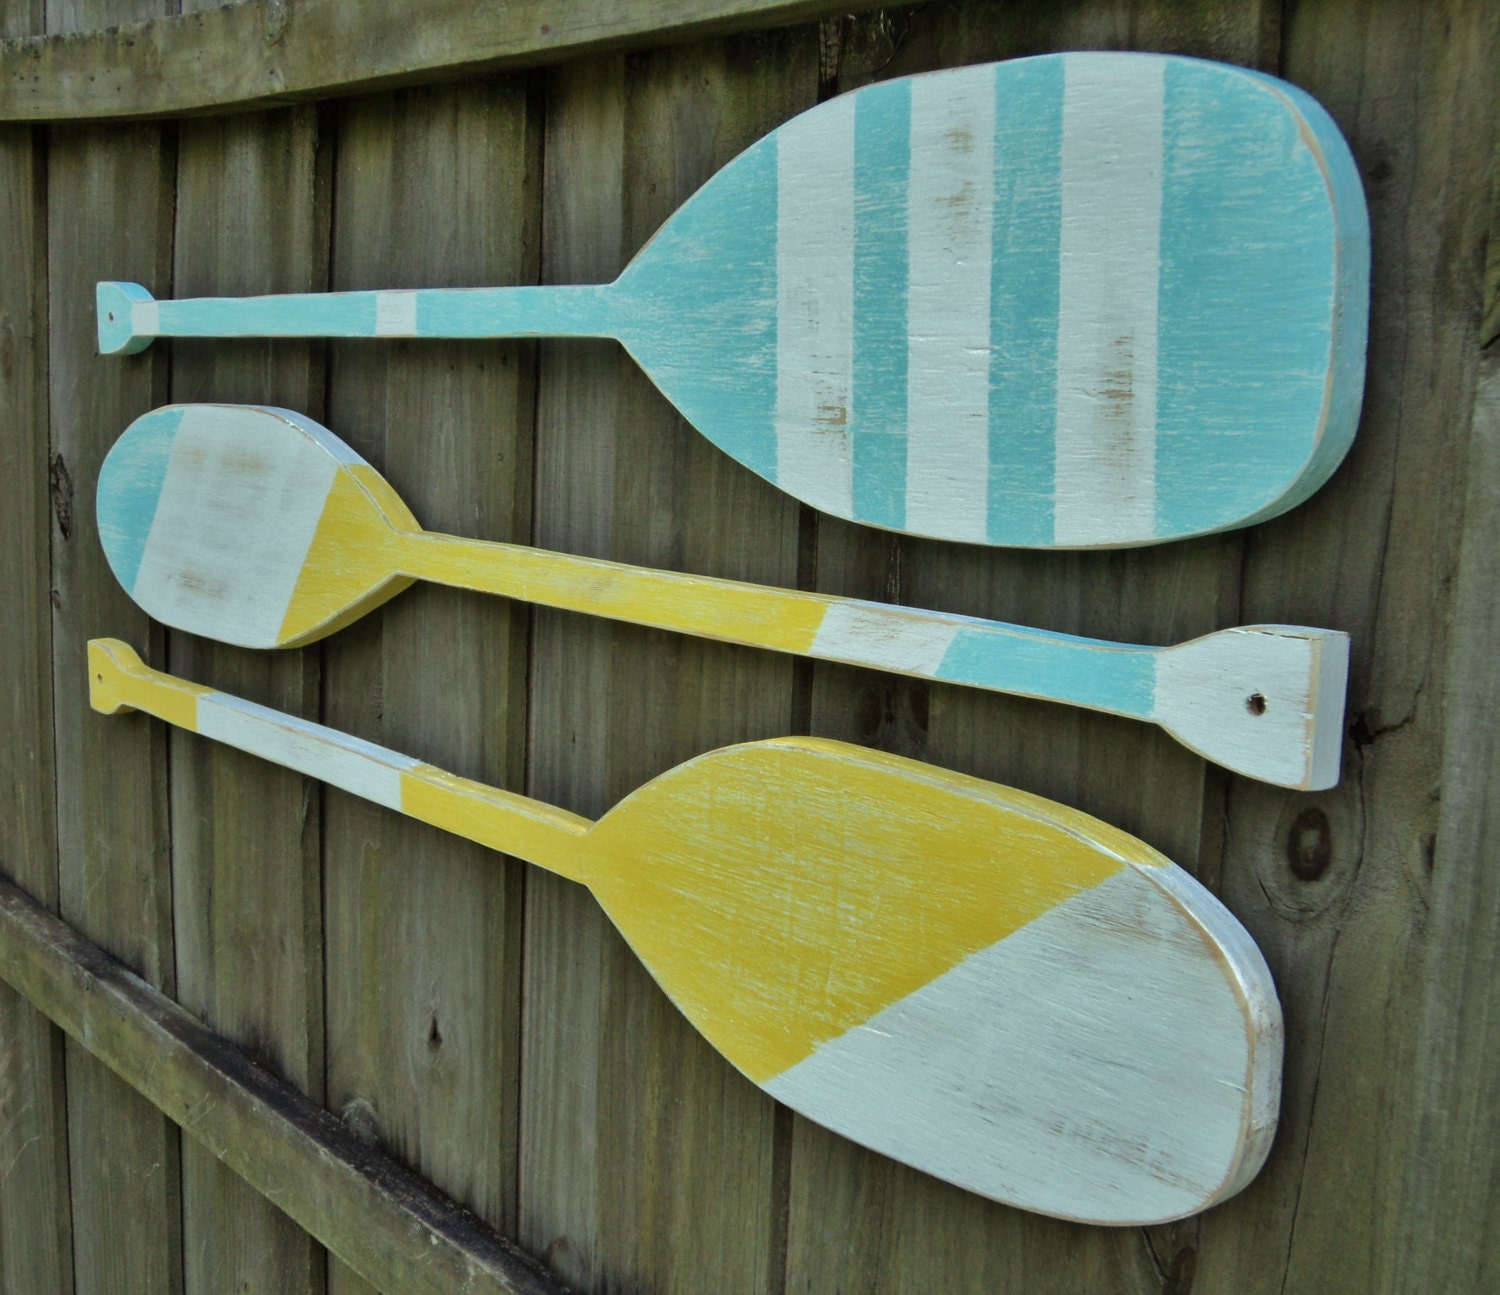 Nautical Wall Decor Oars: Set Of 3 Decorative Boat Oars Lake House Decor Nautical Wall